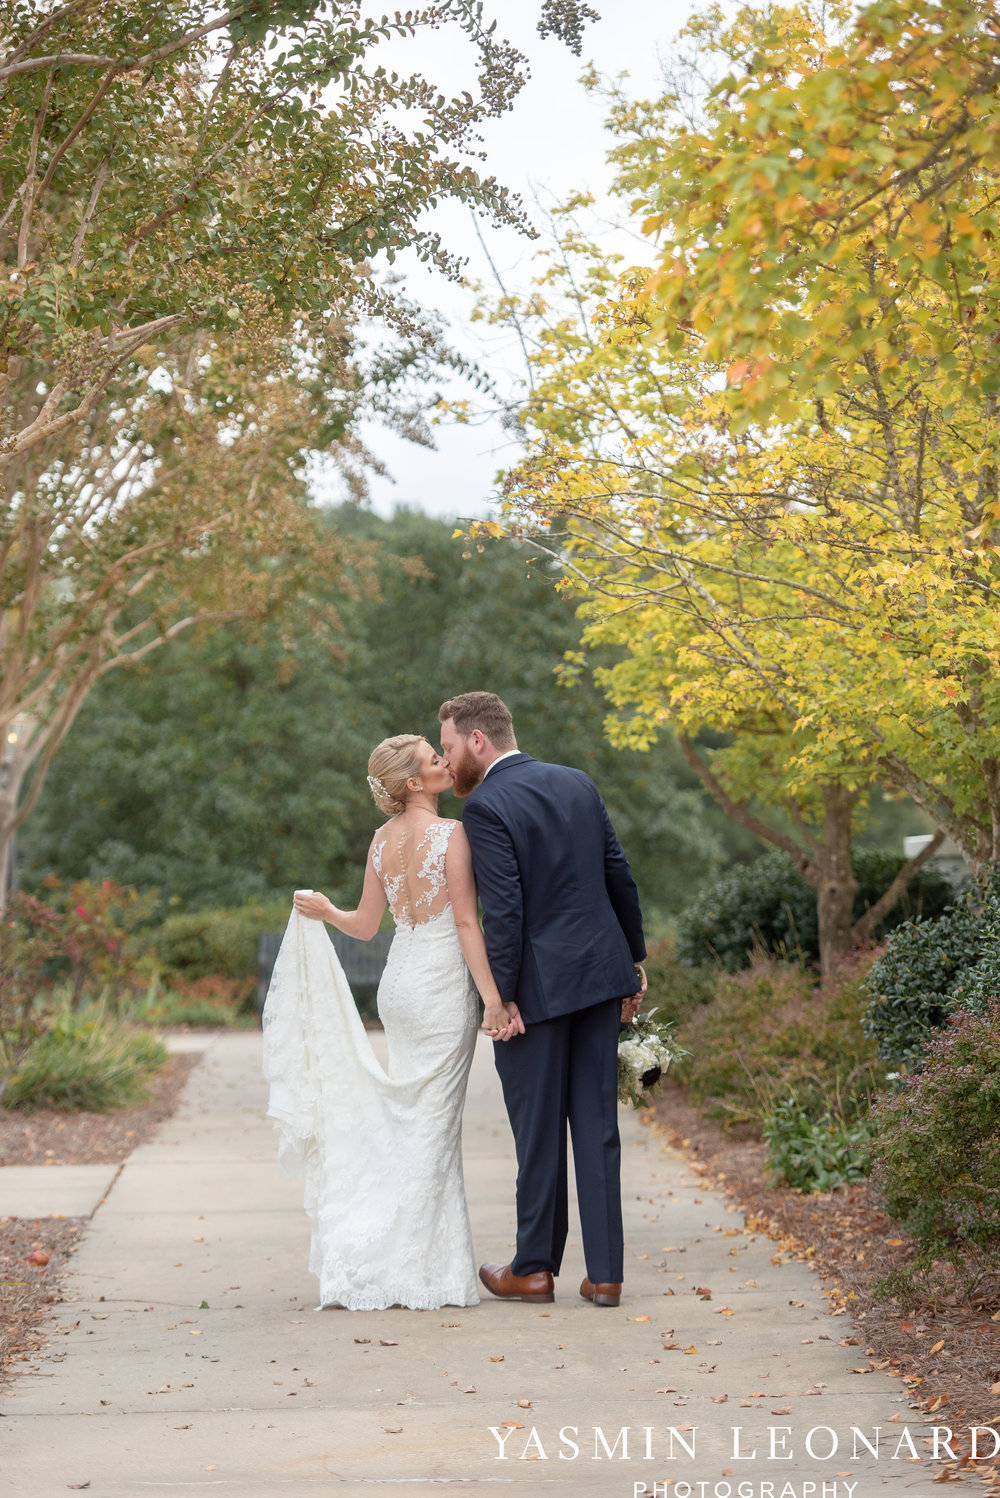 High Point Country Club - High Point Weddings - Emerywood Country Club - High Point Wedding Venues - NC Venues - NC Weddings - NC Wedding Photographers - Yasmin Leonard Photography-14.jpg